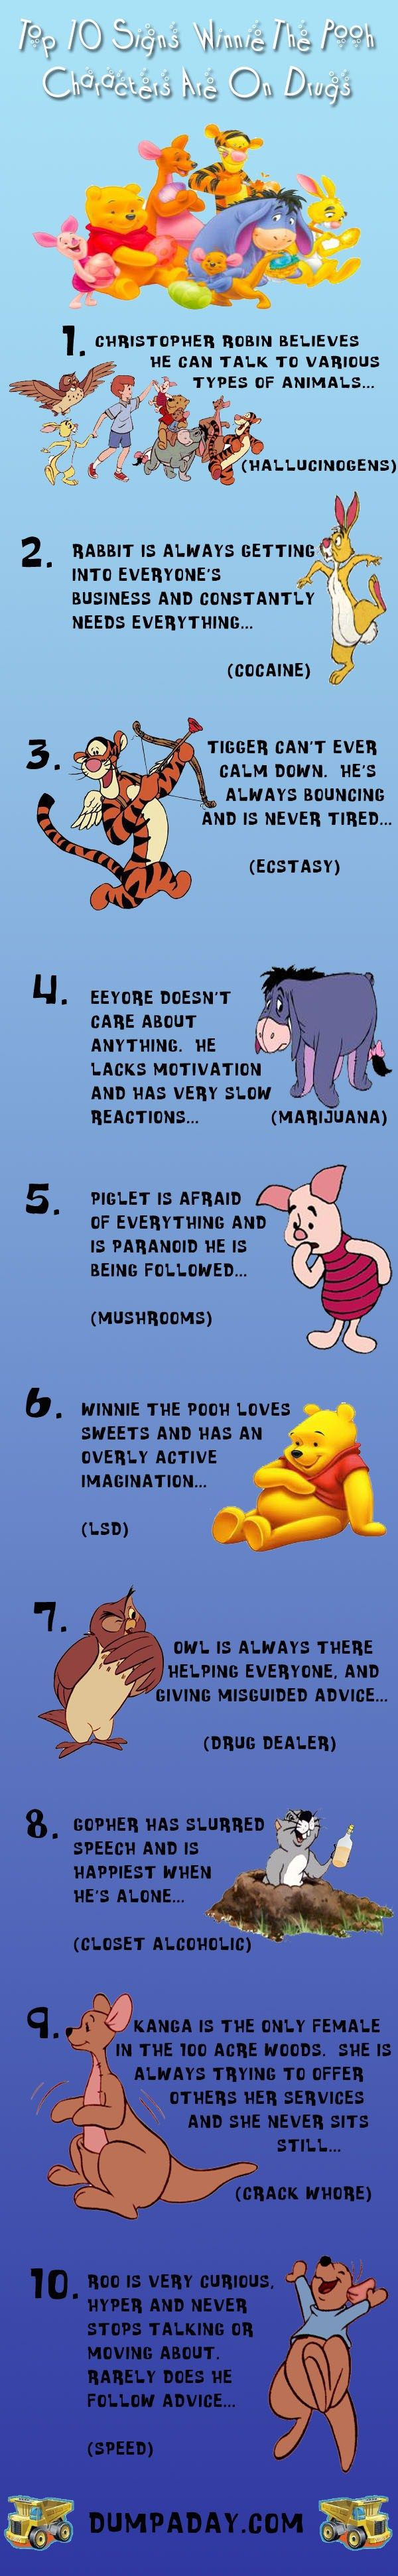 10 Signs Winnie the Pooh characters are on drugs! :p SORRY TO HEAR IT... MY SON LOVED POOH